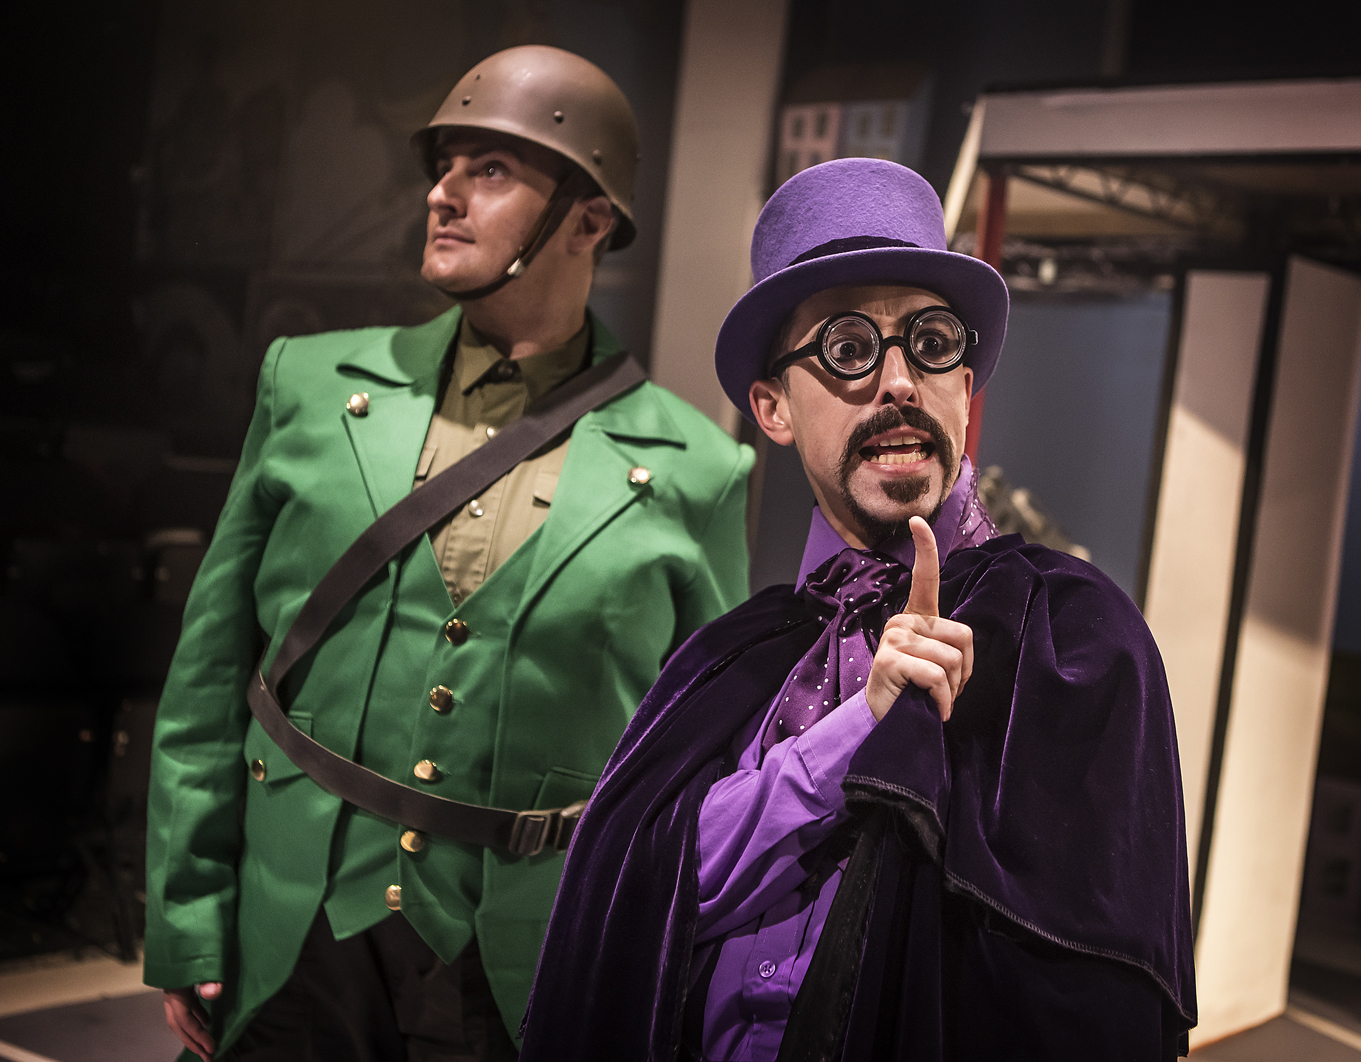 Bananaman The Musical 2 Carl Mulaney (General Blight) Marc Pickering (Dr Gloom) Photo  by Pamela Raith.jpg